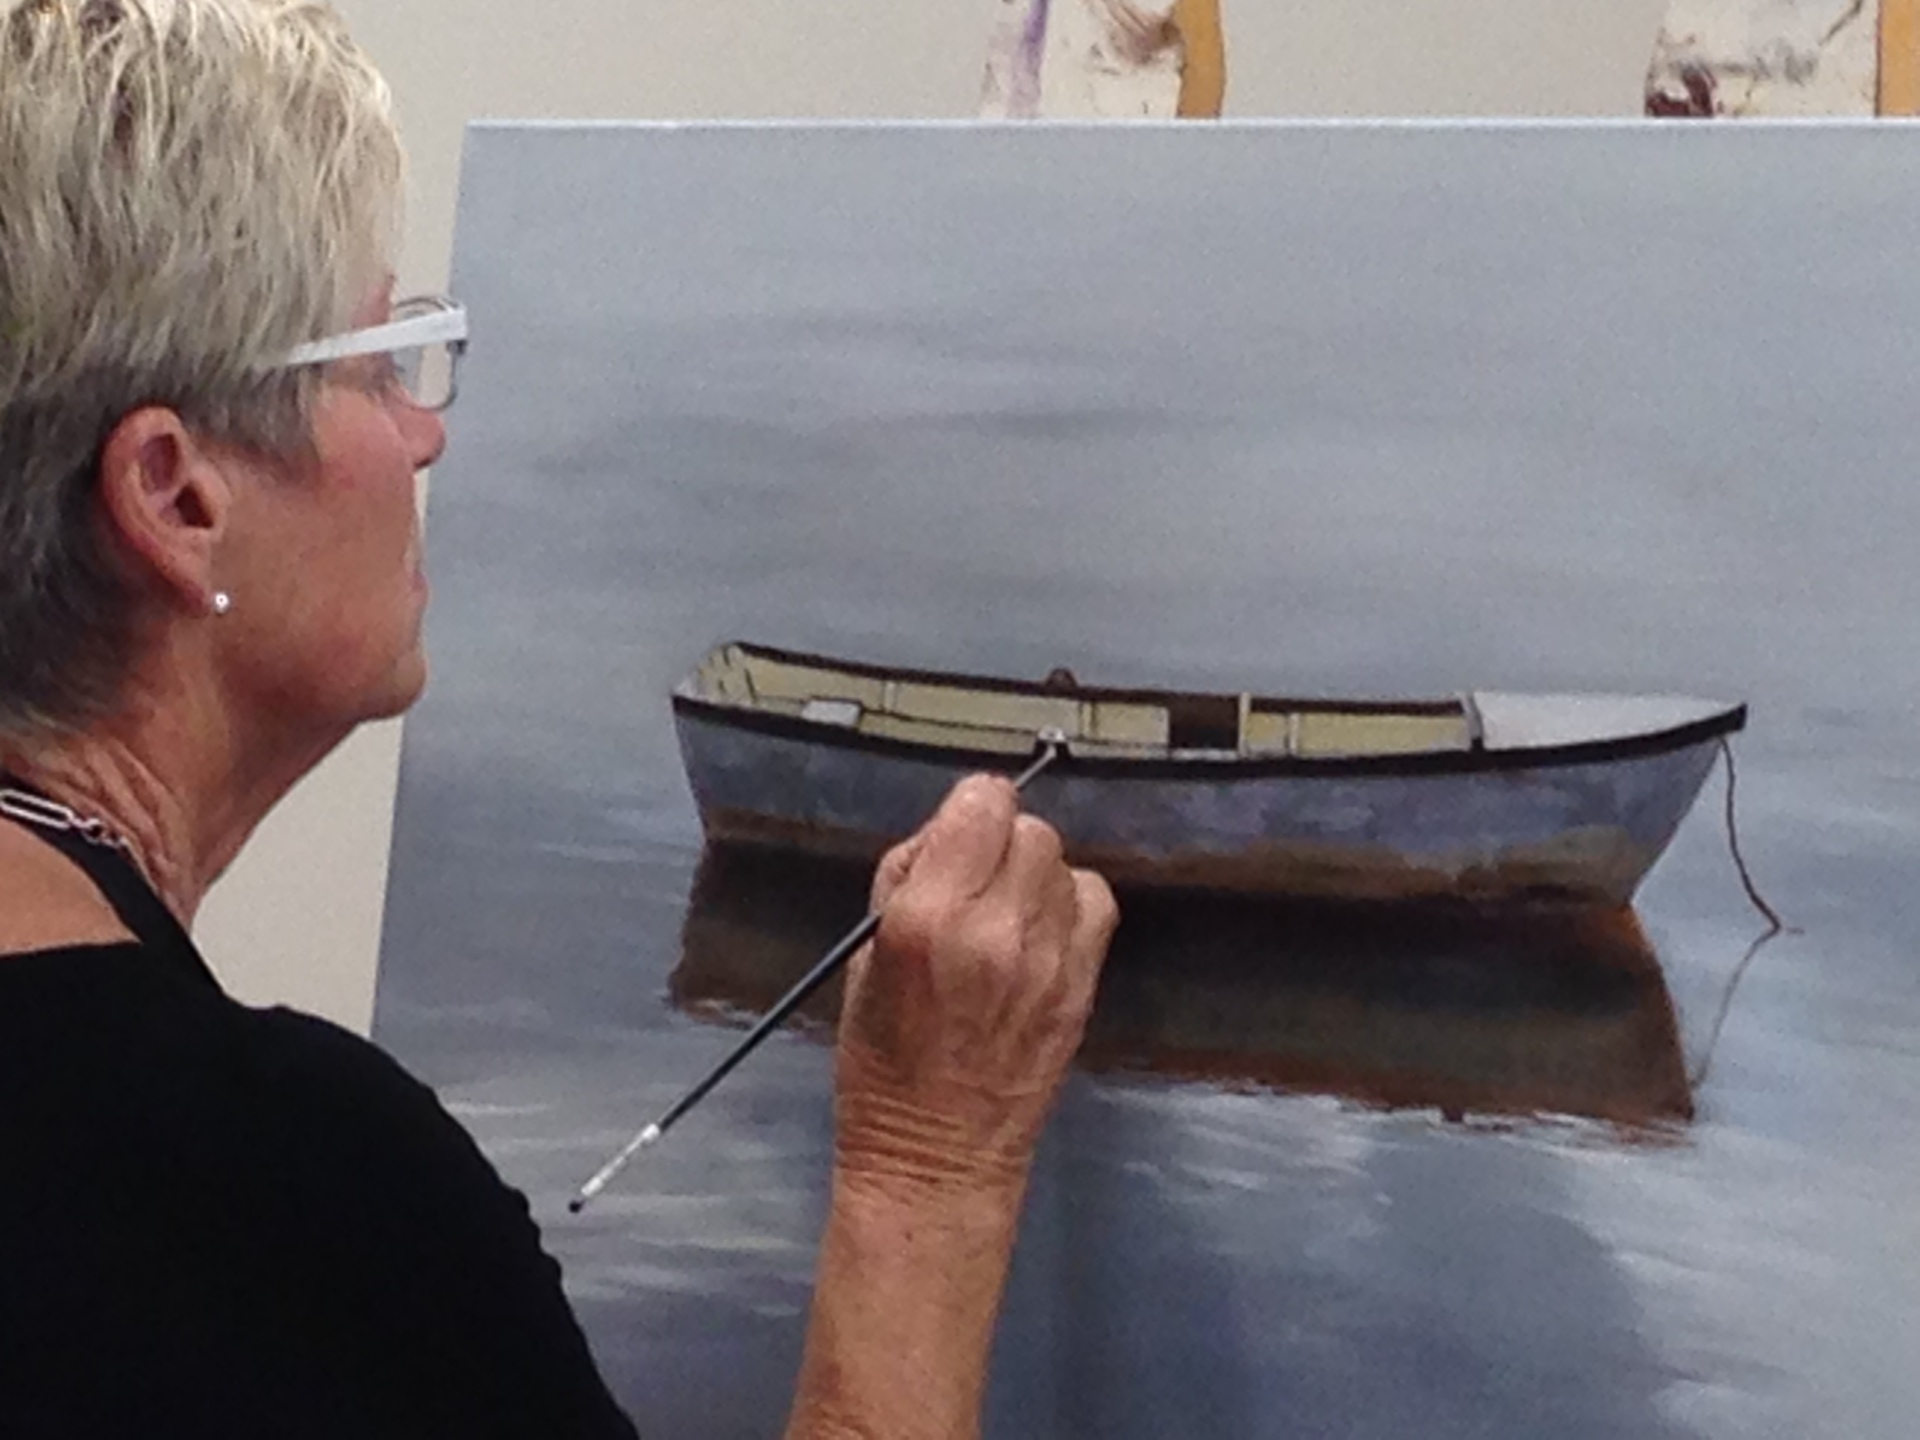 PAINTING WORKSHOPS, TAHAN ART CLASSES, CHRISTCHURCH